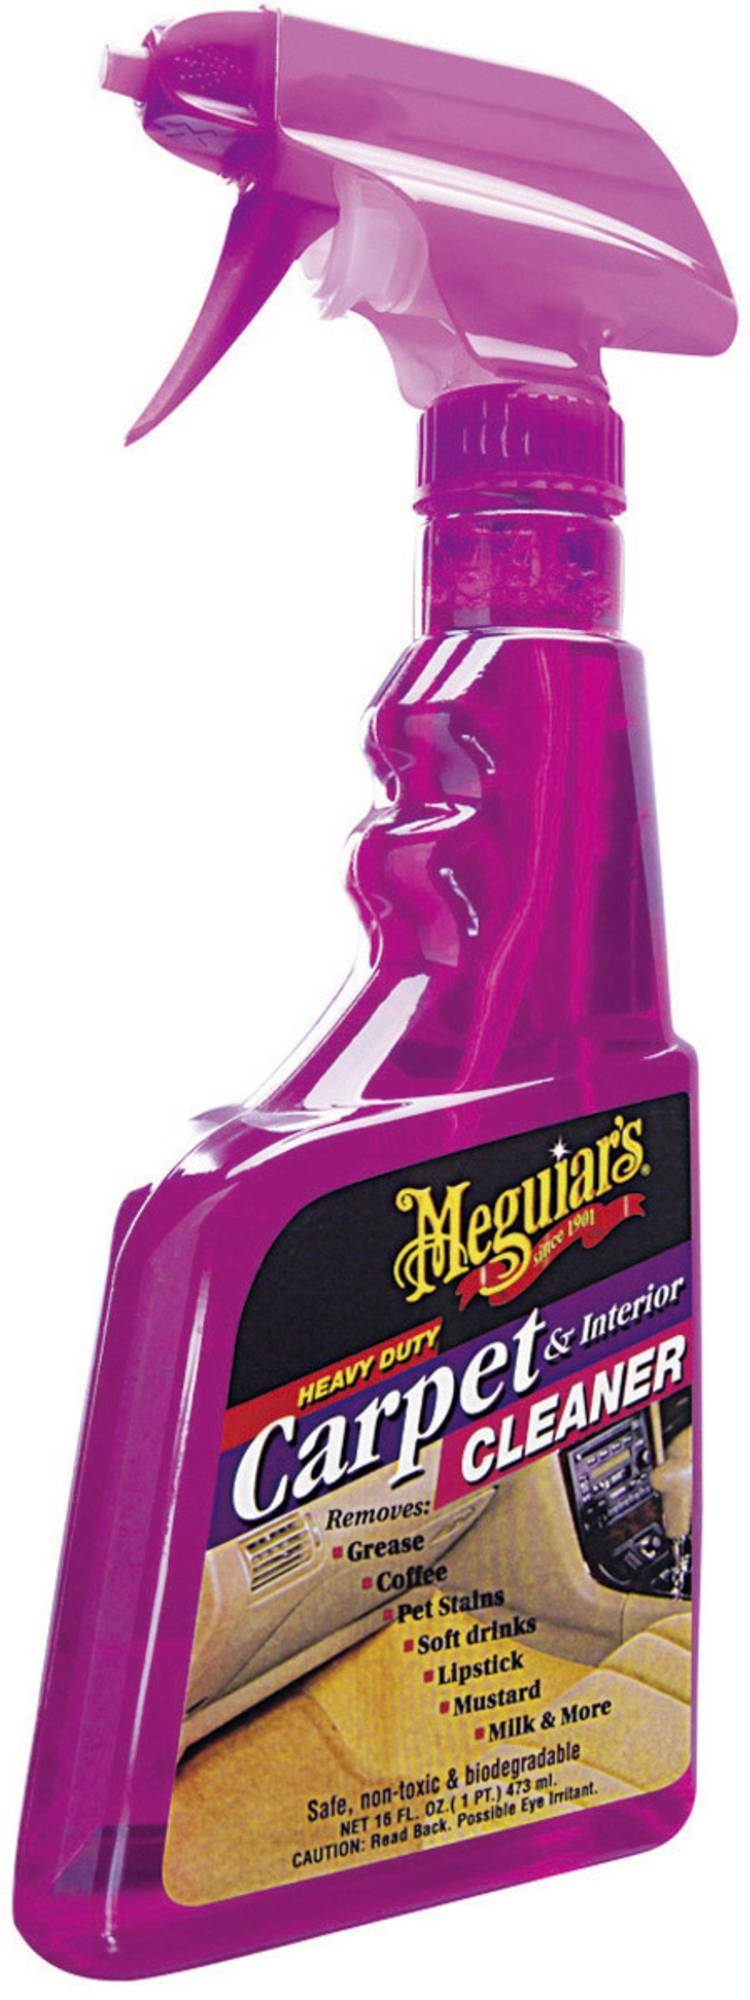 Image of Meguiars Carpet & Interior Cleaner G9416 473 ml